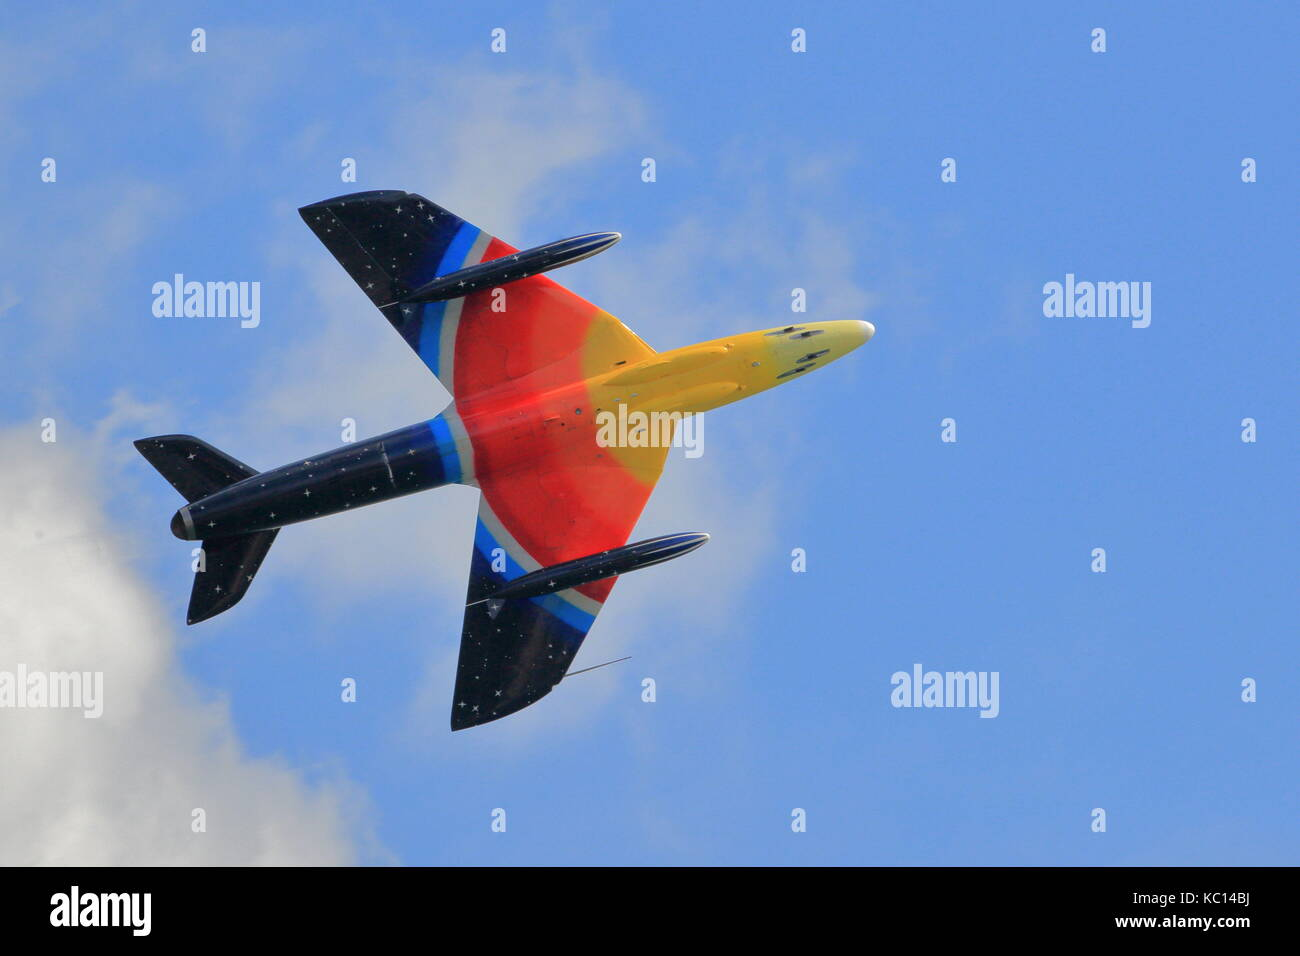 Hawker Hunter Mk 58A G-PSST Miss Demeanour in glorious technicolour at the Bournemouth Air Festival, Dorset UK - Stock Image